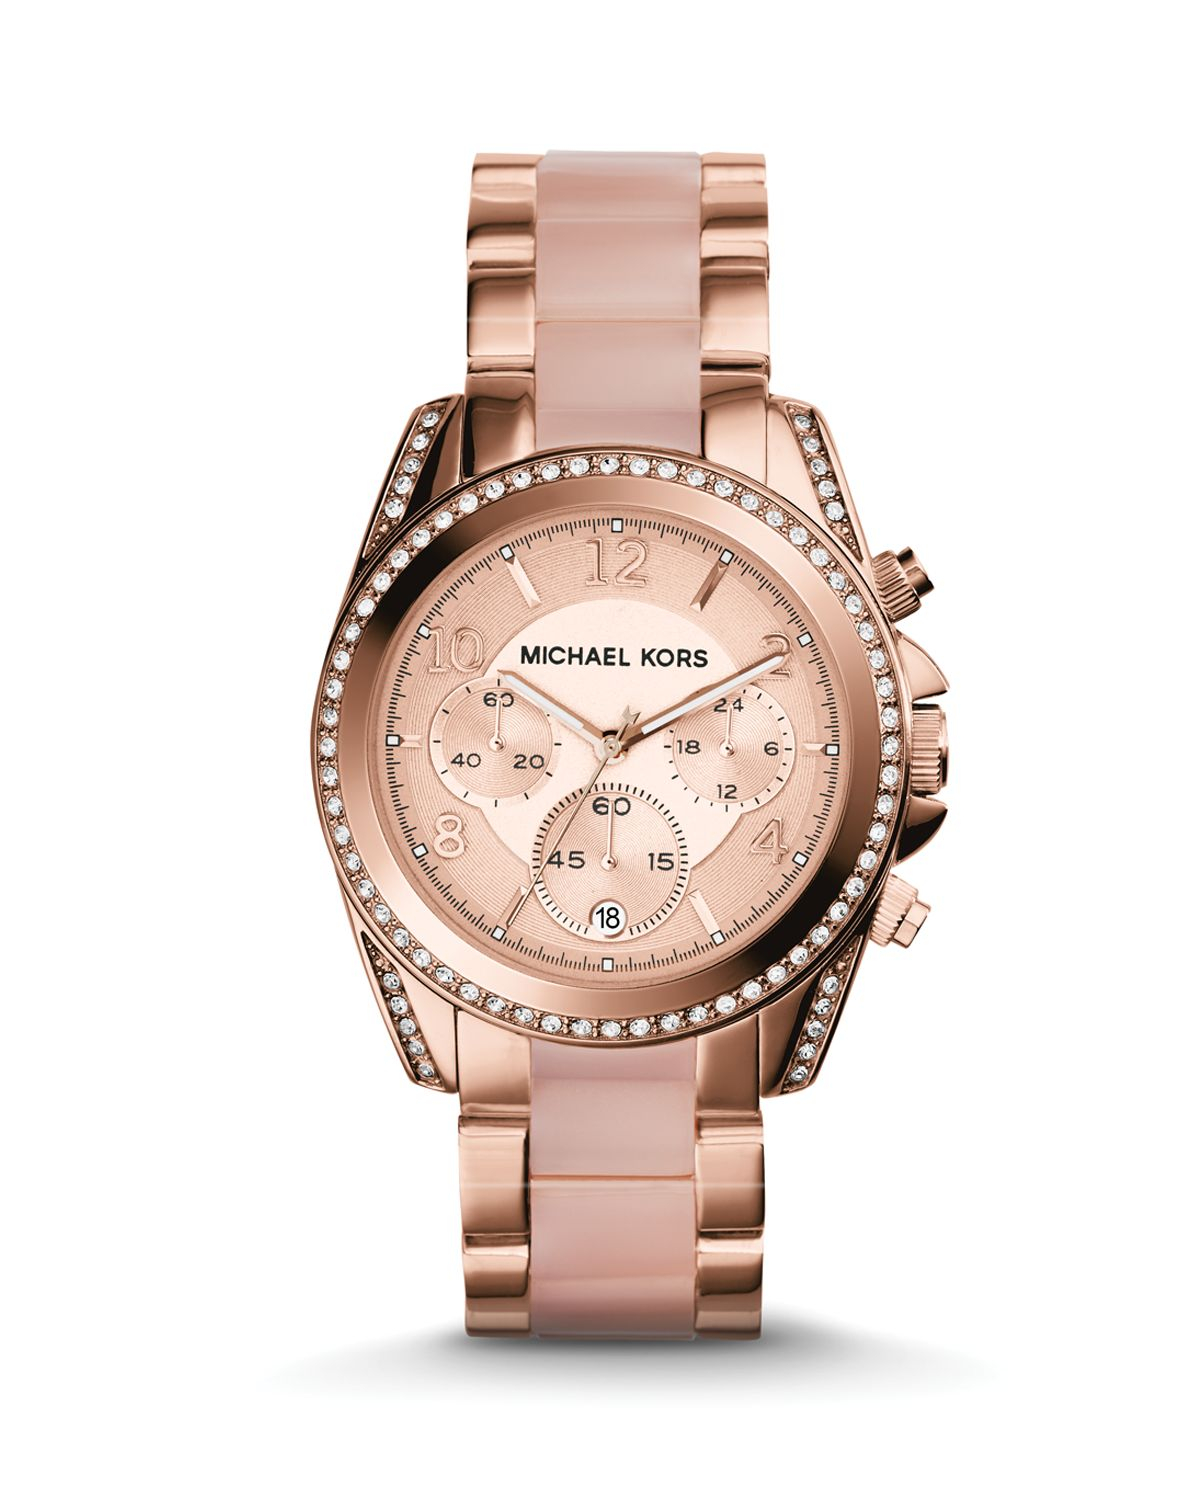 michael kors rose gold tone blair watch 39mm in pink. Black Bedroom Furniture Sets. Home Design Ideas